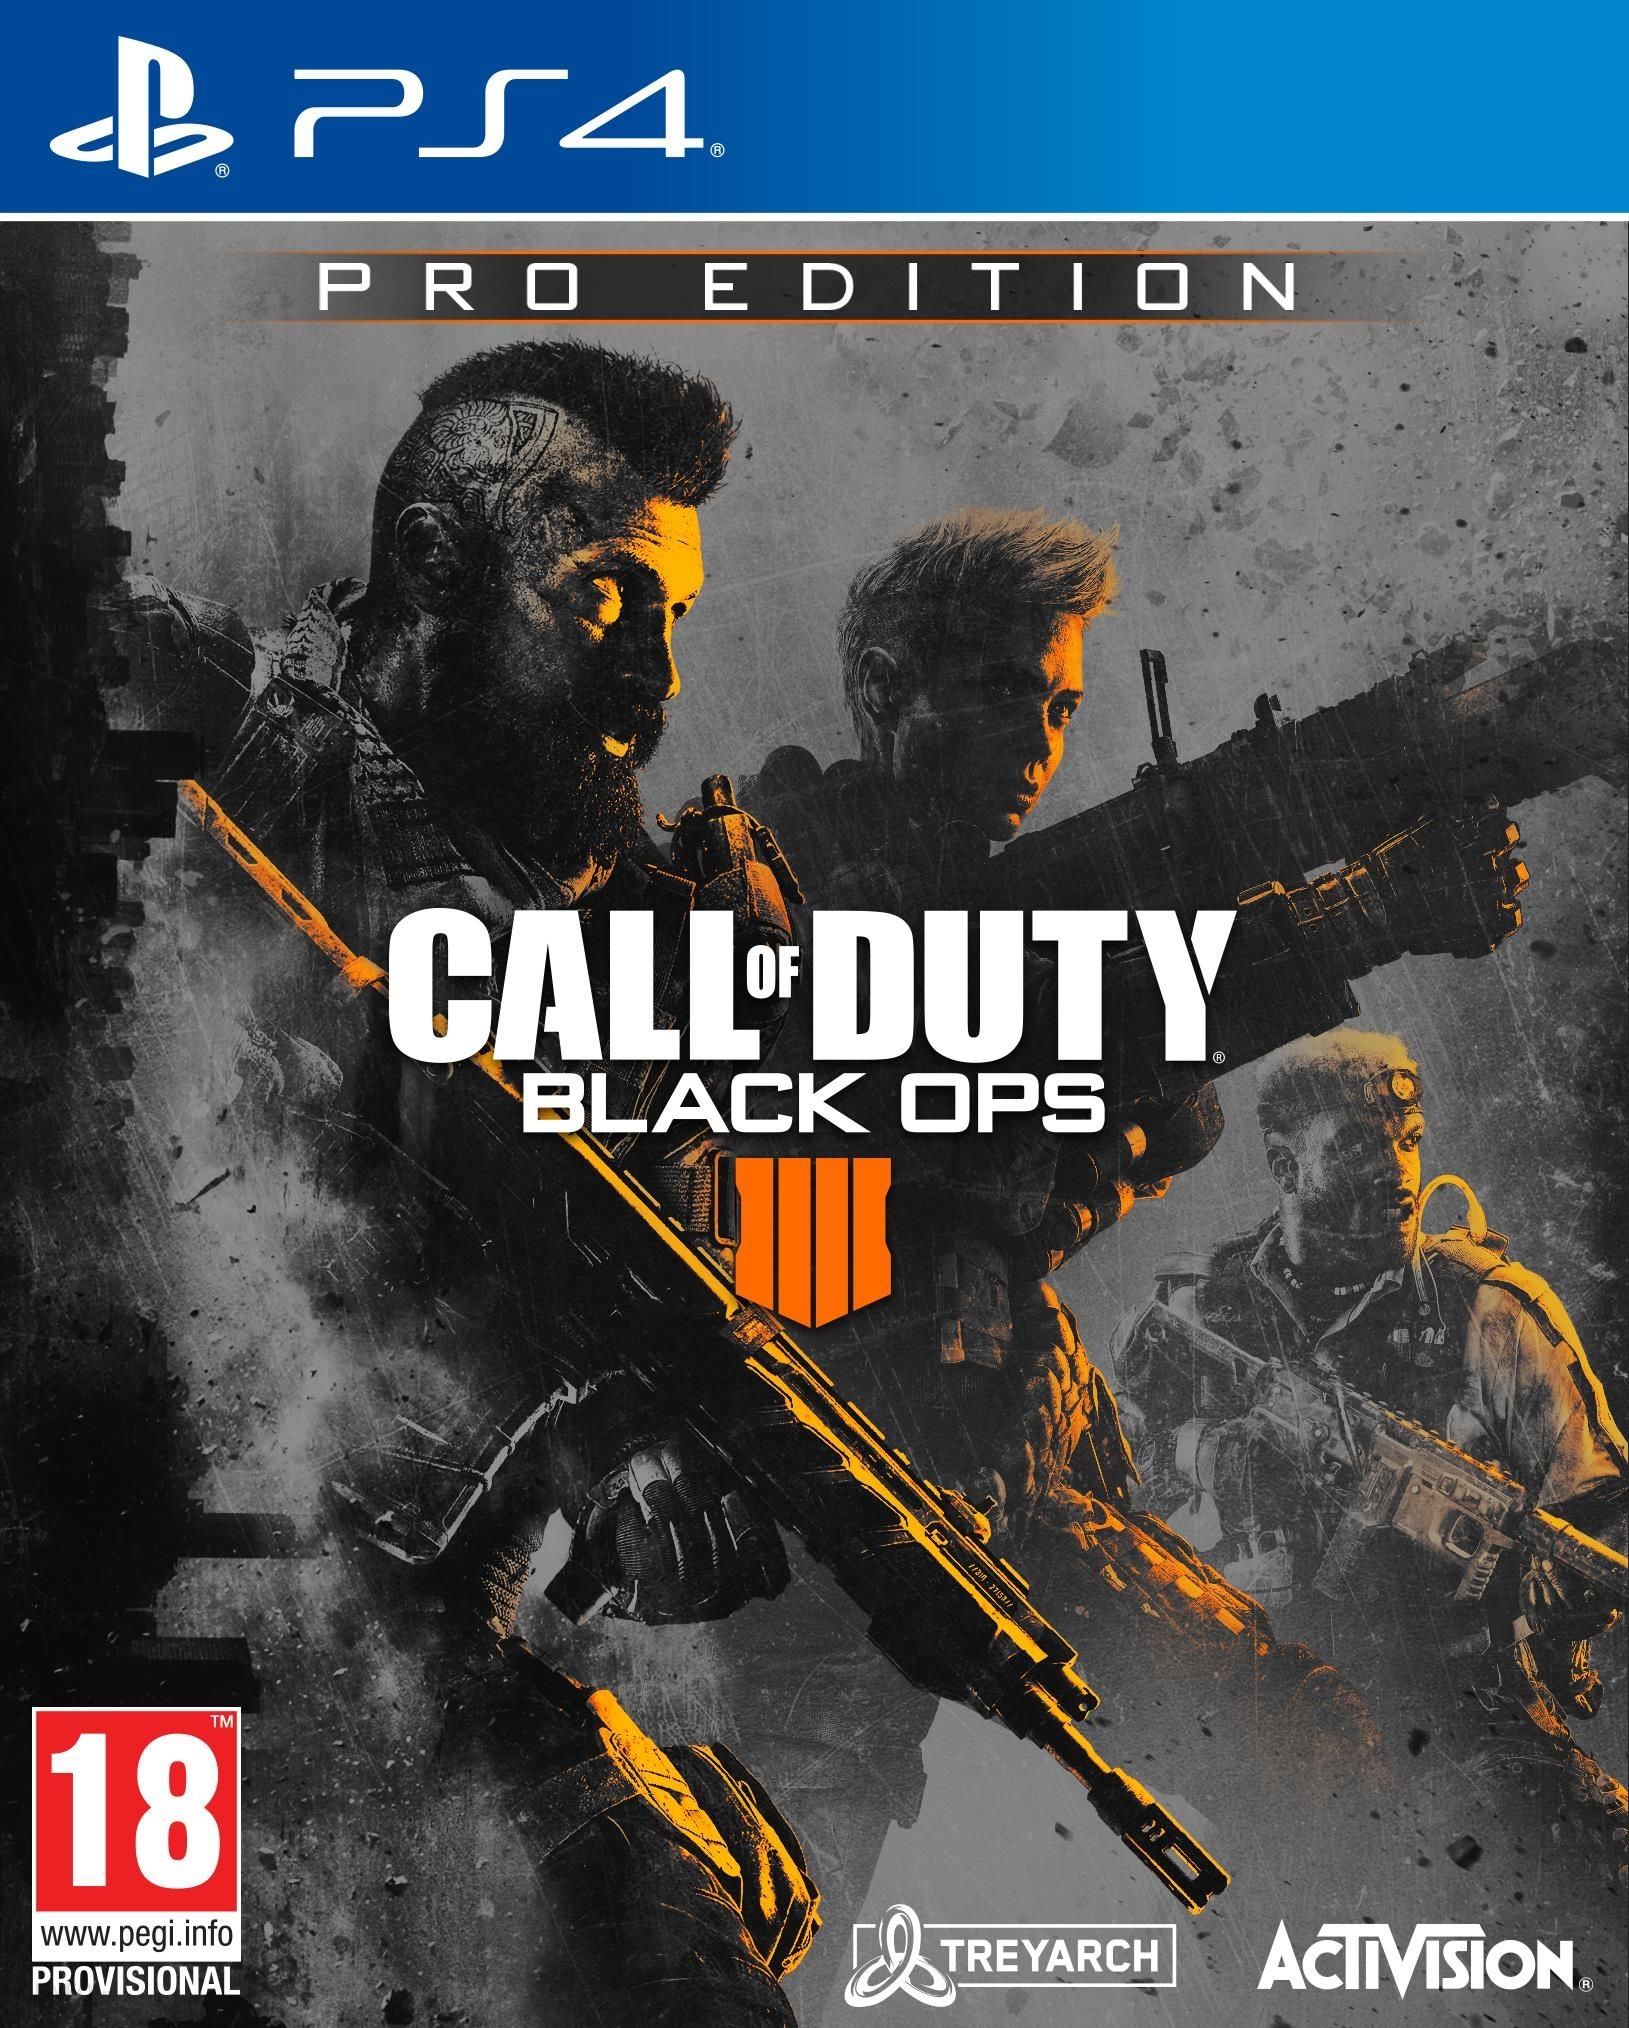 Call of Duty Black Ops IIII Pro Edition